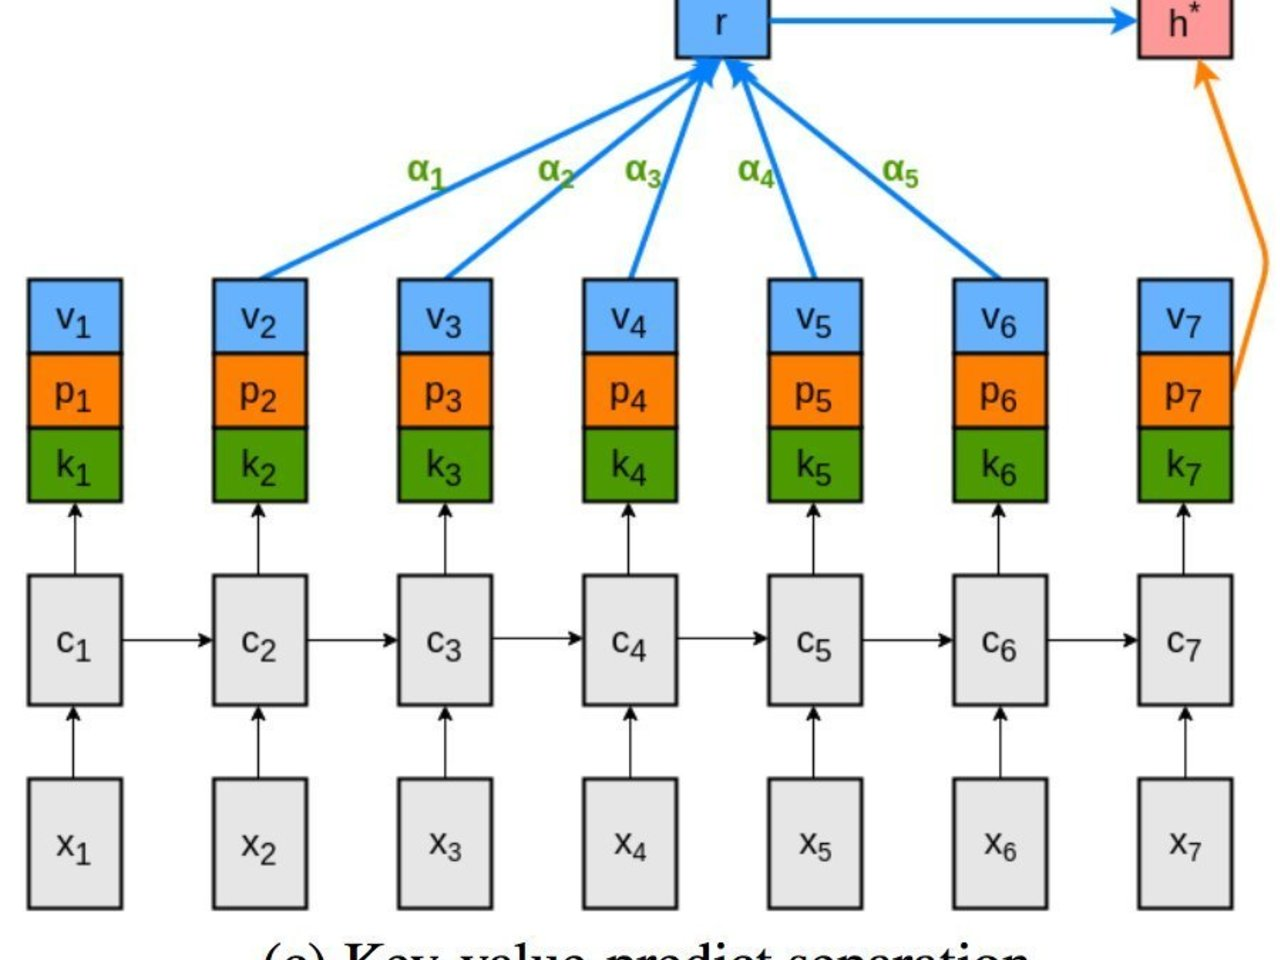 deeplearning-papernotes